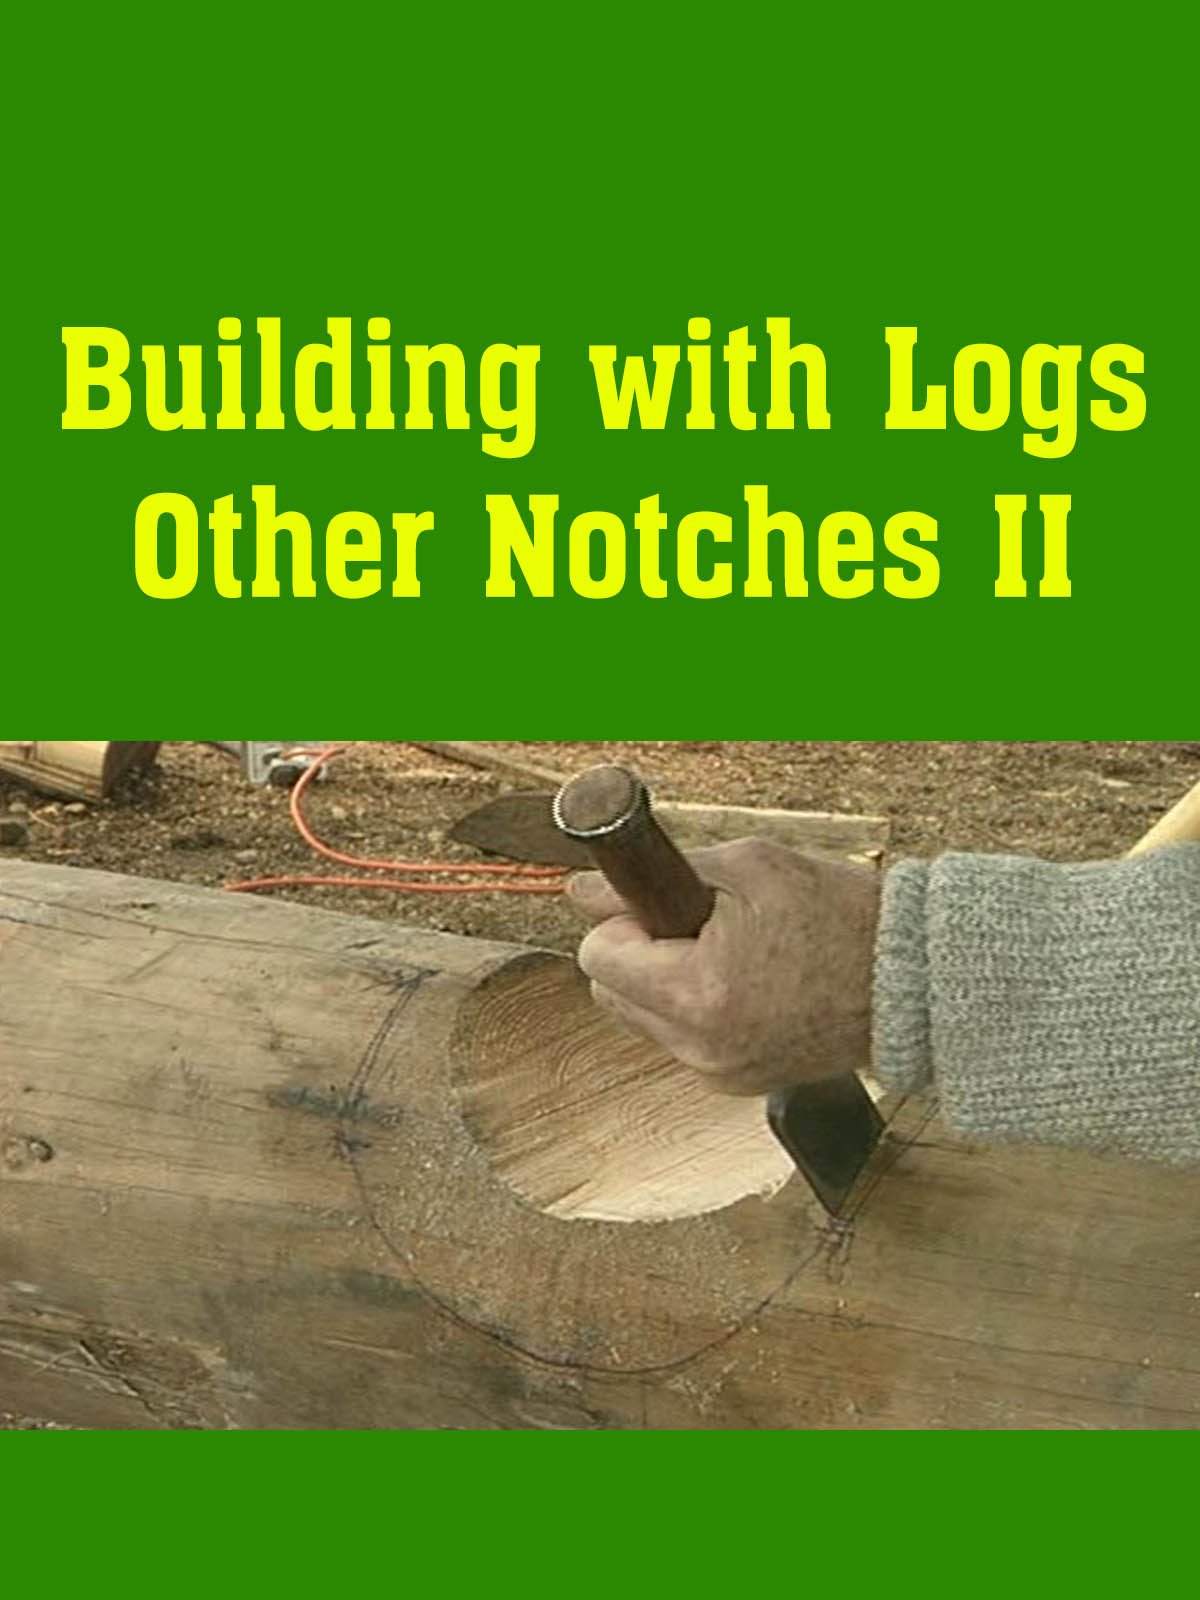 Building with Logs Other Notches II